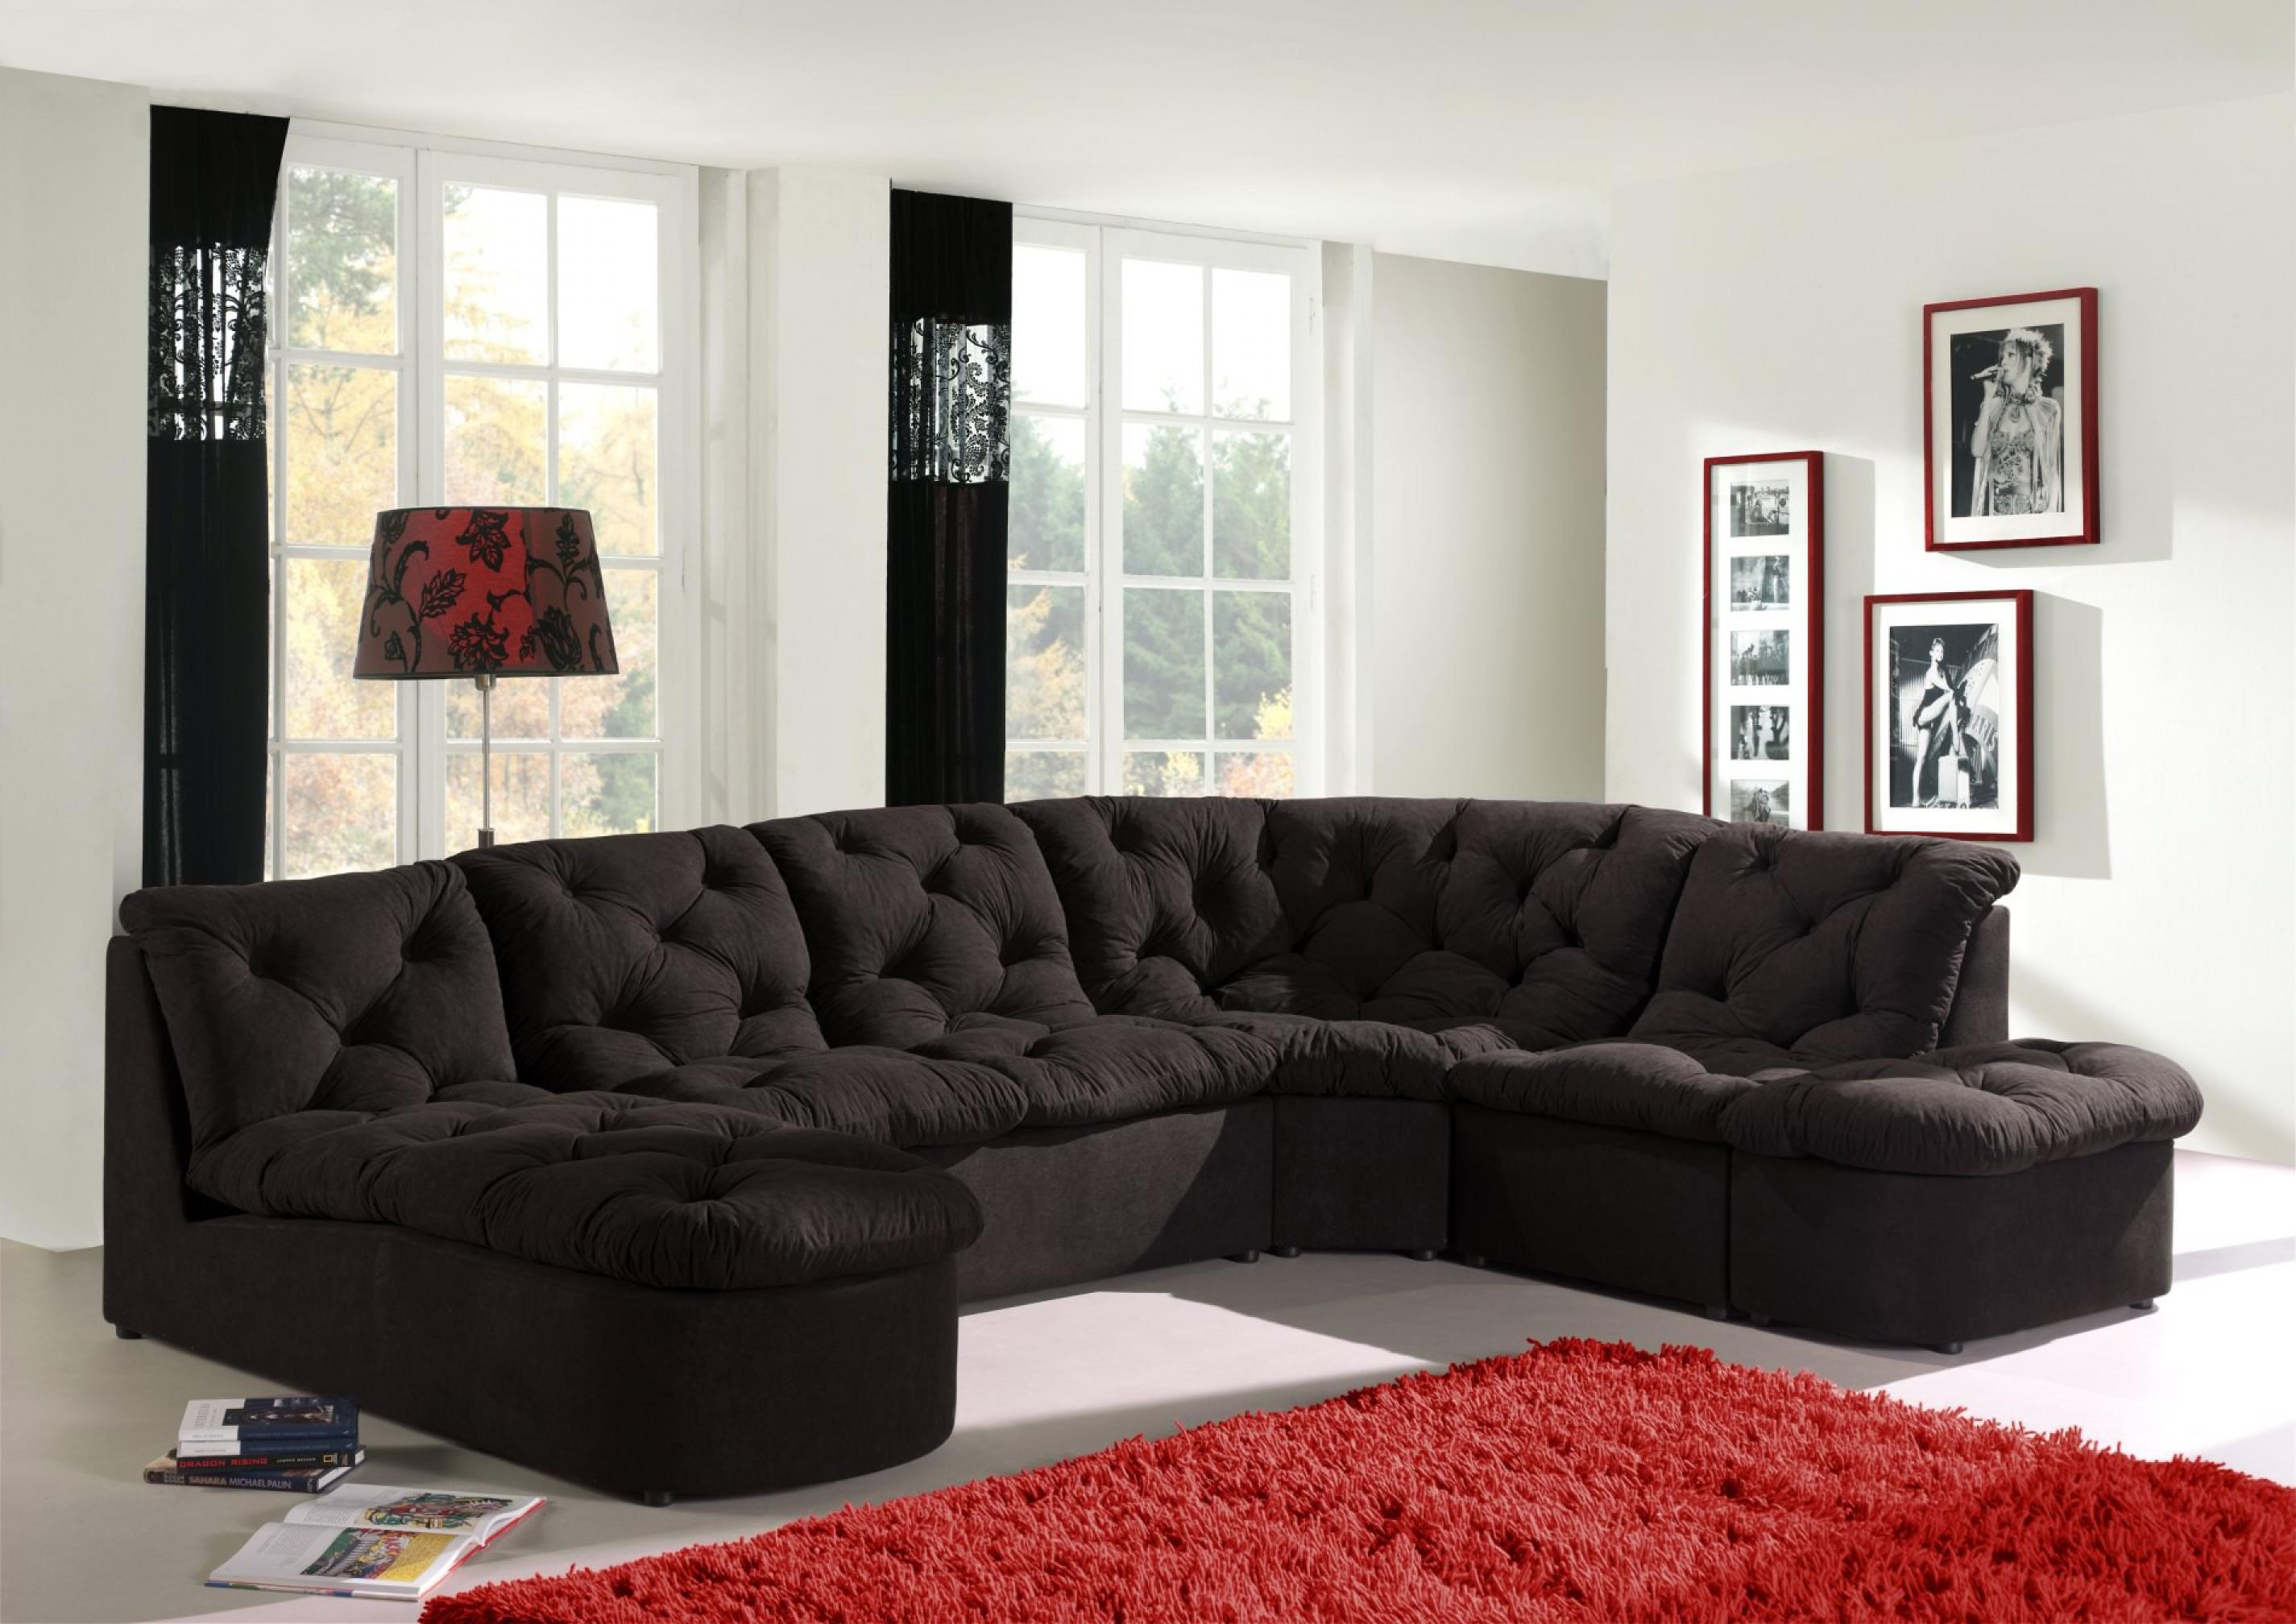 canap lit le bon coin royal sofa id e de canap et meuble maison. Black Bedroom Furniture Sets. Home Design Ideas